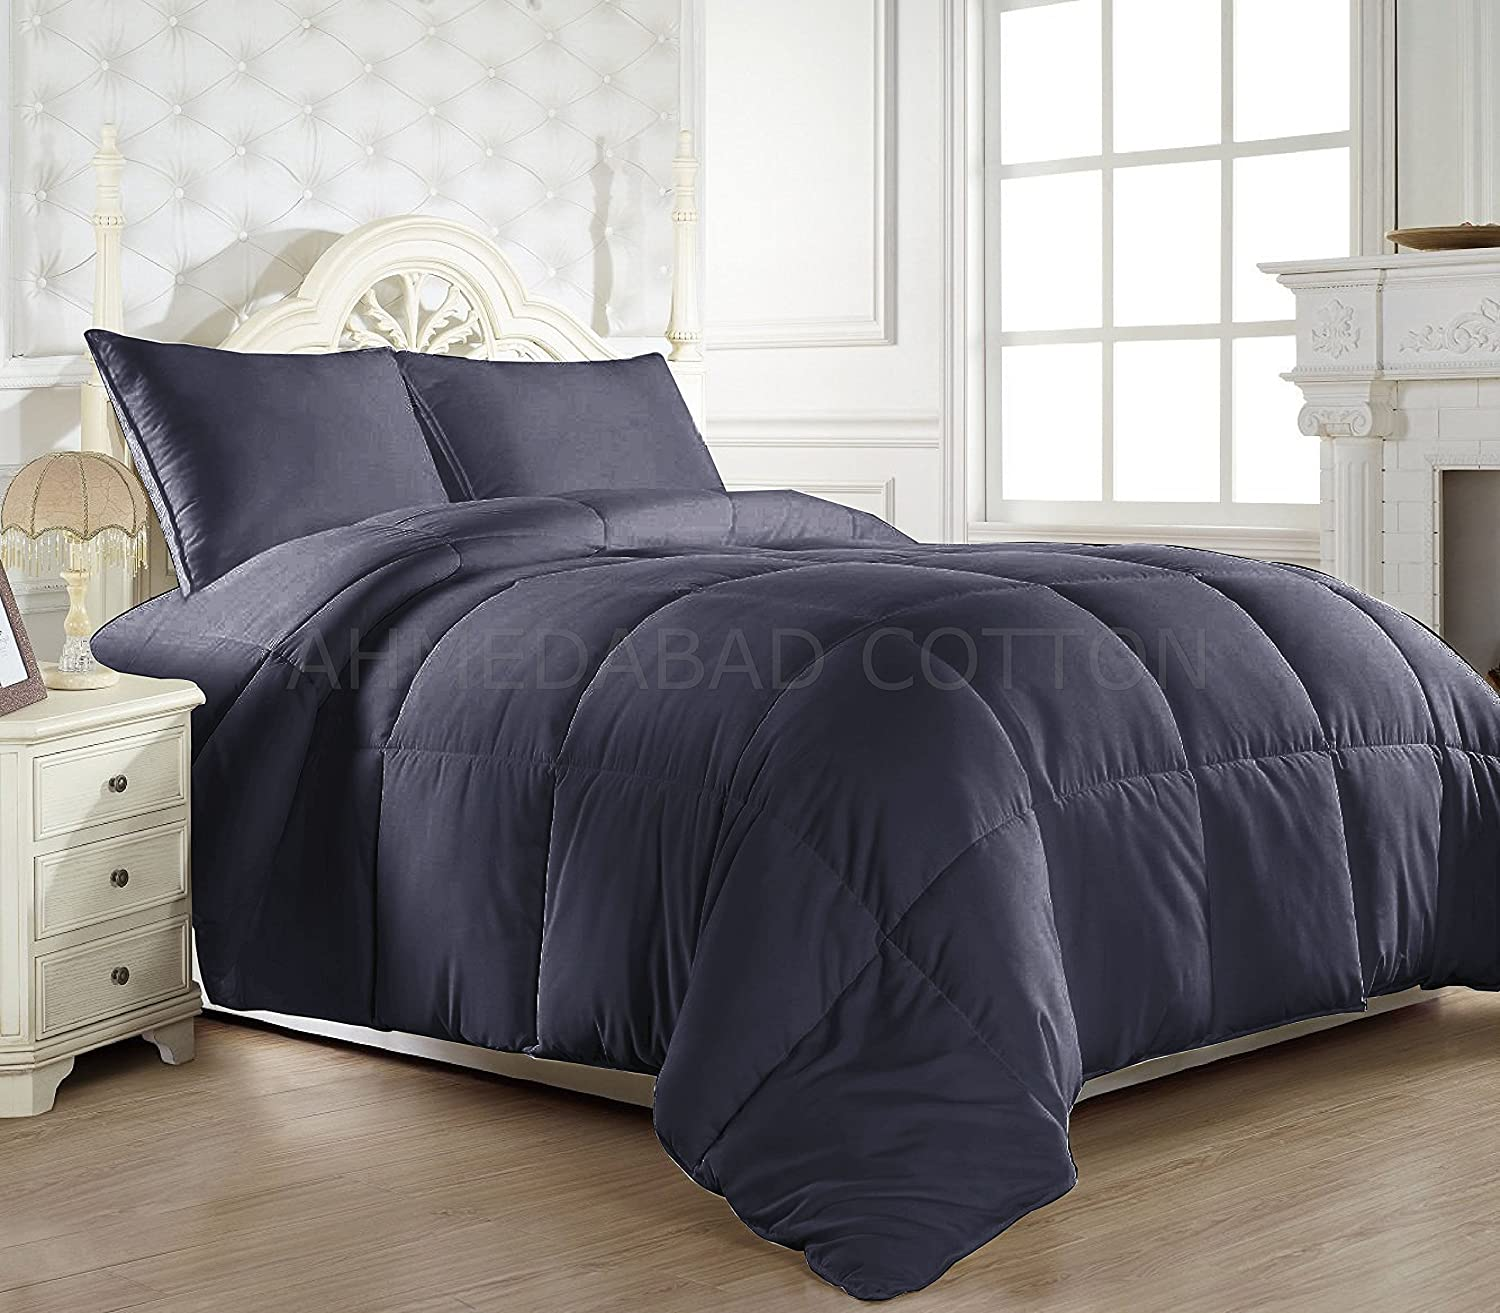 bath grey nautica bed reversible pdx wayfair comforter reviews fairwater dark set